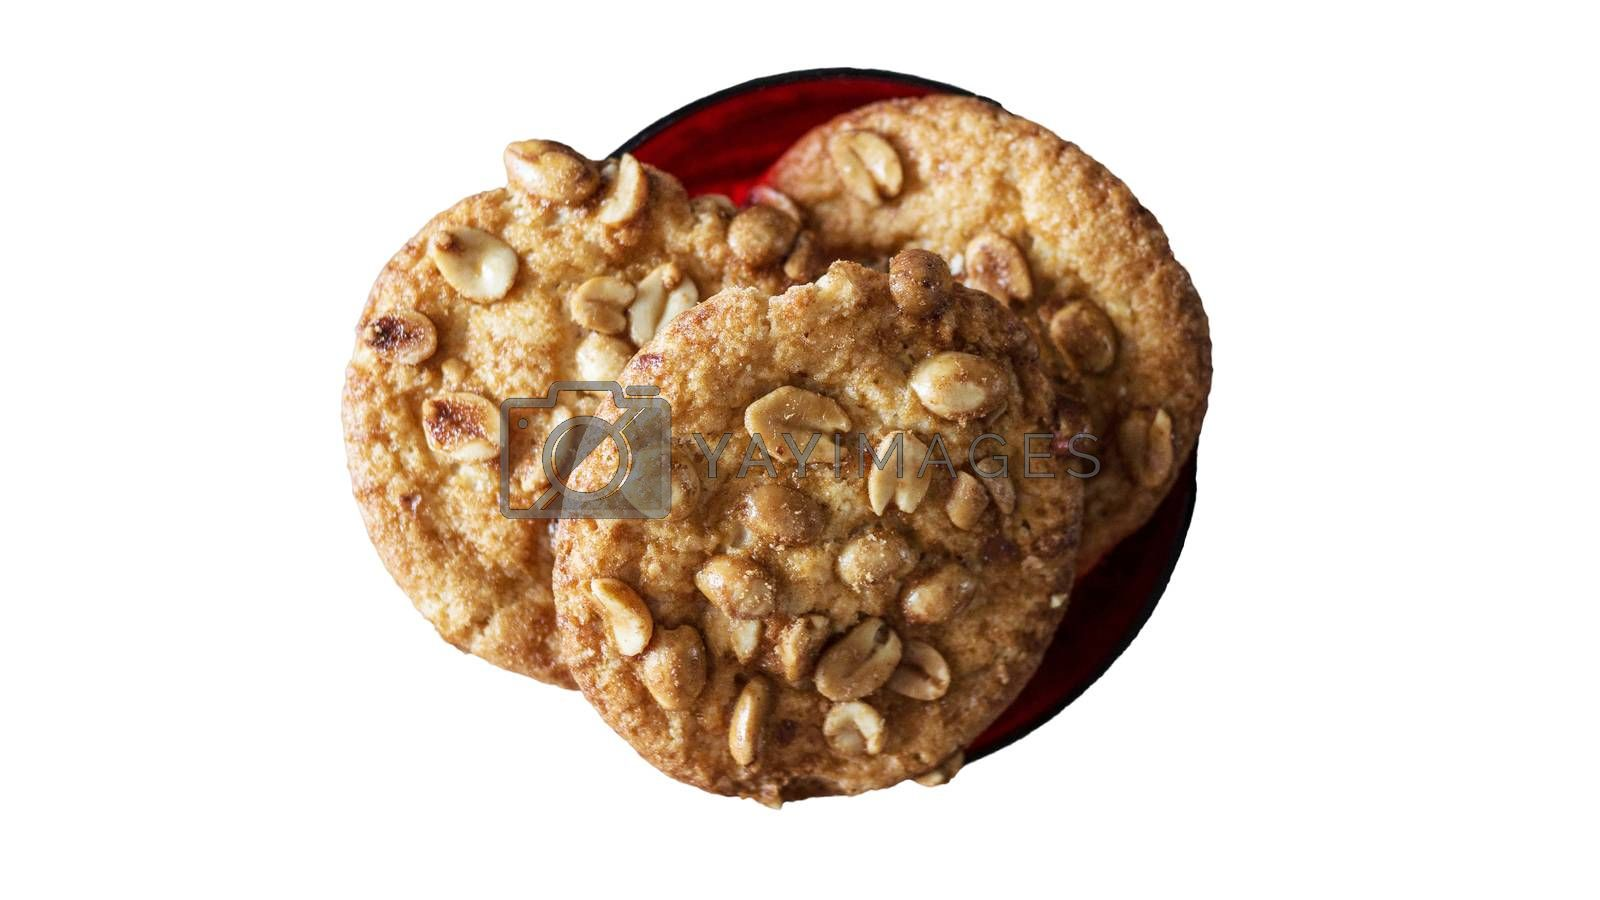 Royalty free image of Top view of peanut filled cookies isolated on white. by Andriii_Klapkoo